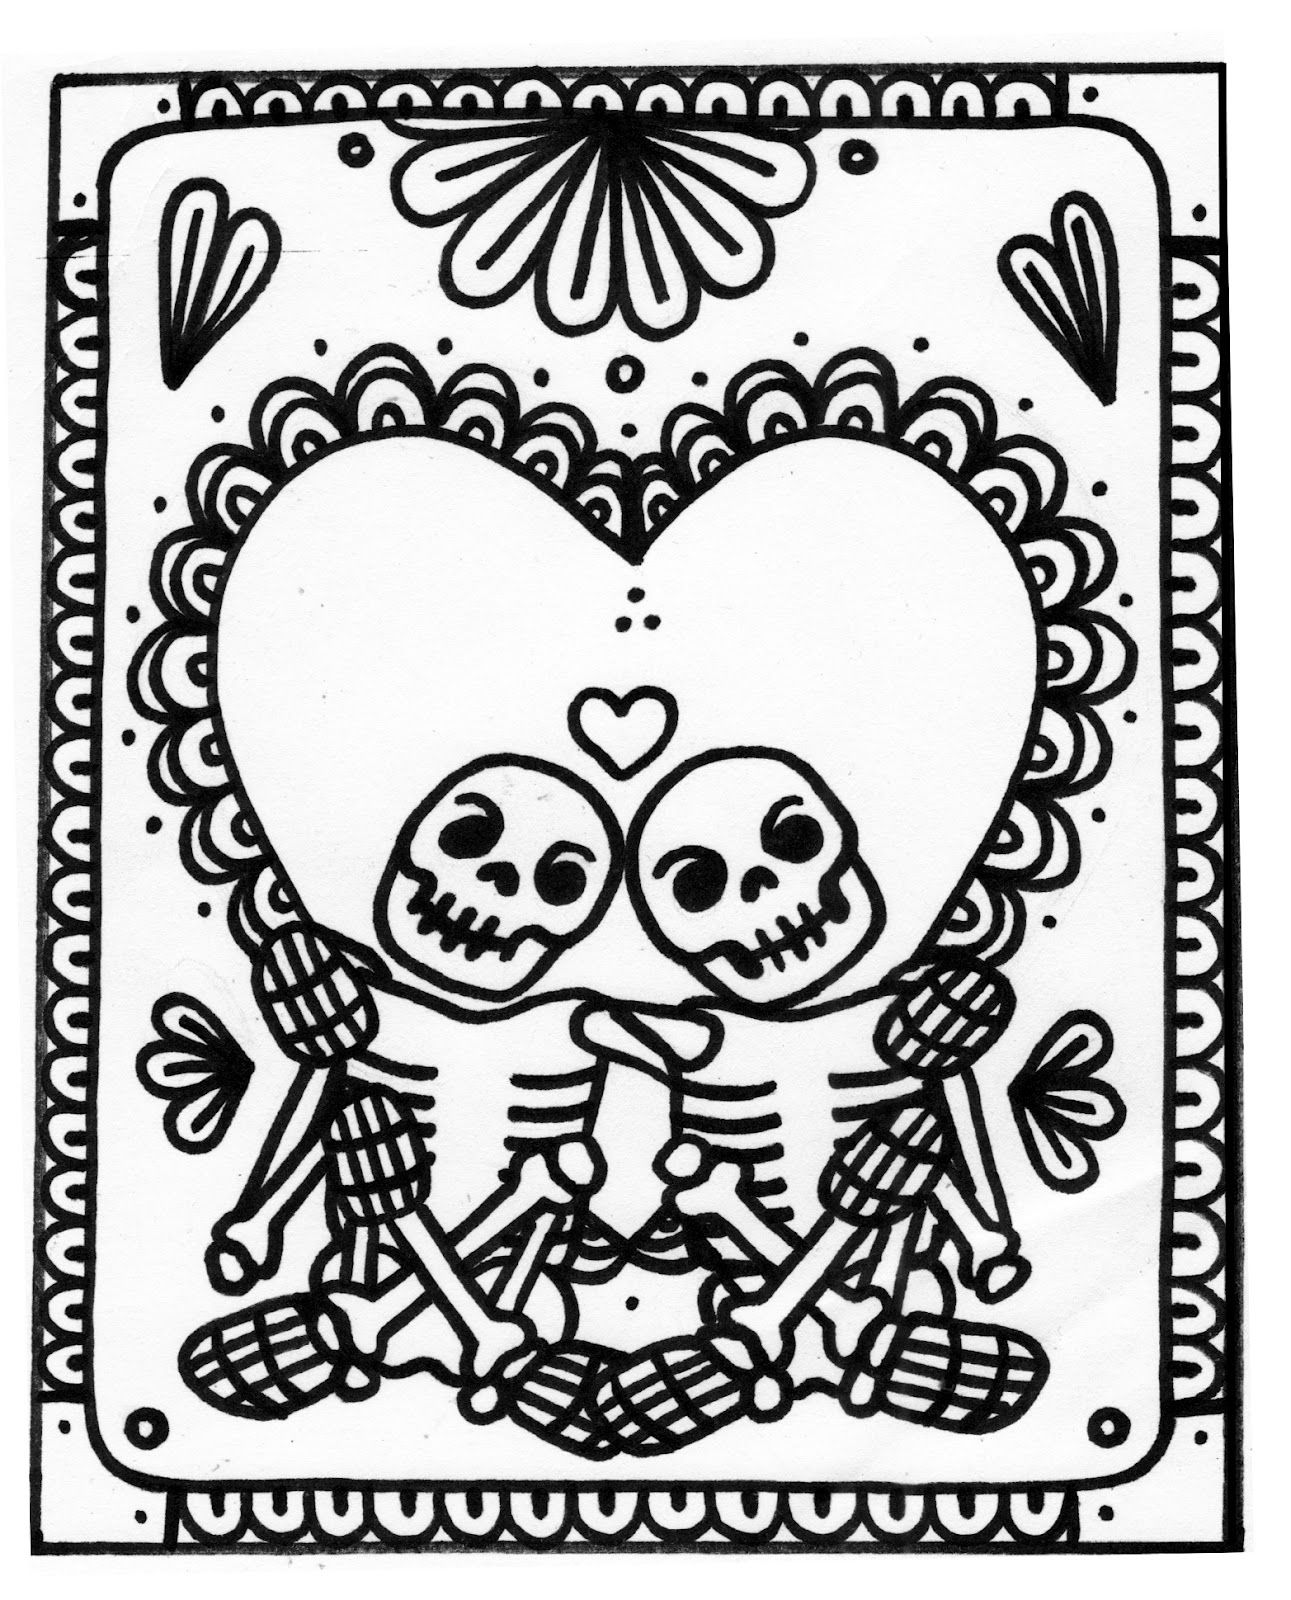 Day Of The Dead Skeletons Coloring Pages. Yucca Flats  N M Wenchkin s coloring pages Valentine 3 Skeleton Love Day